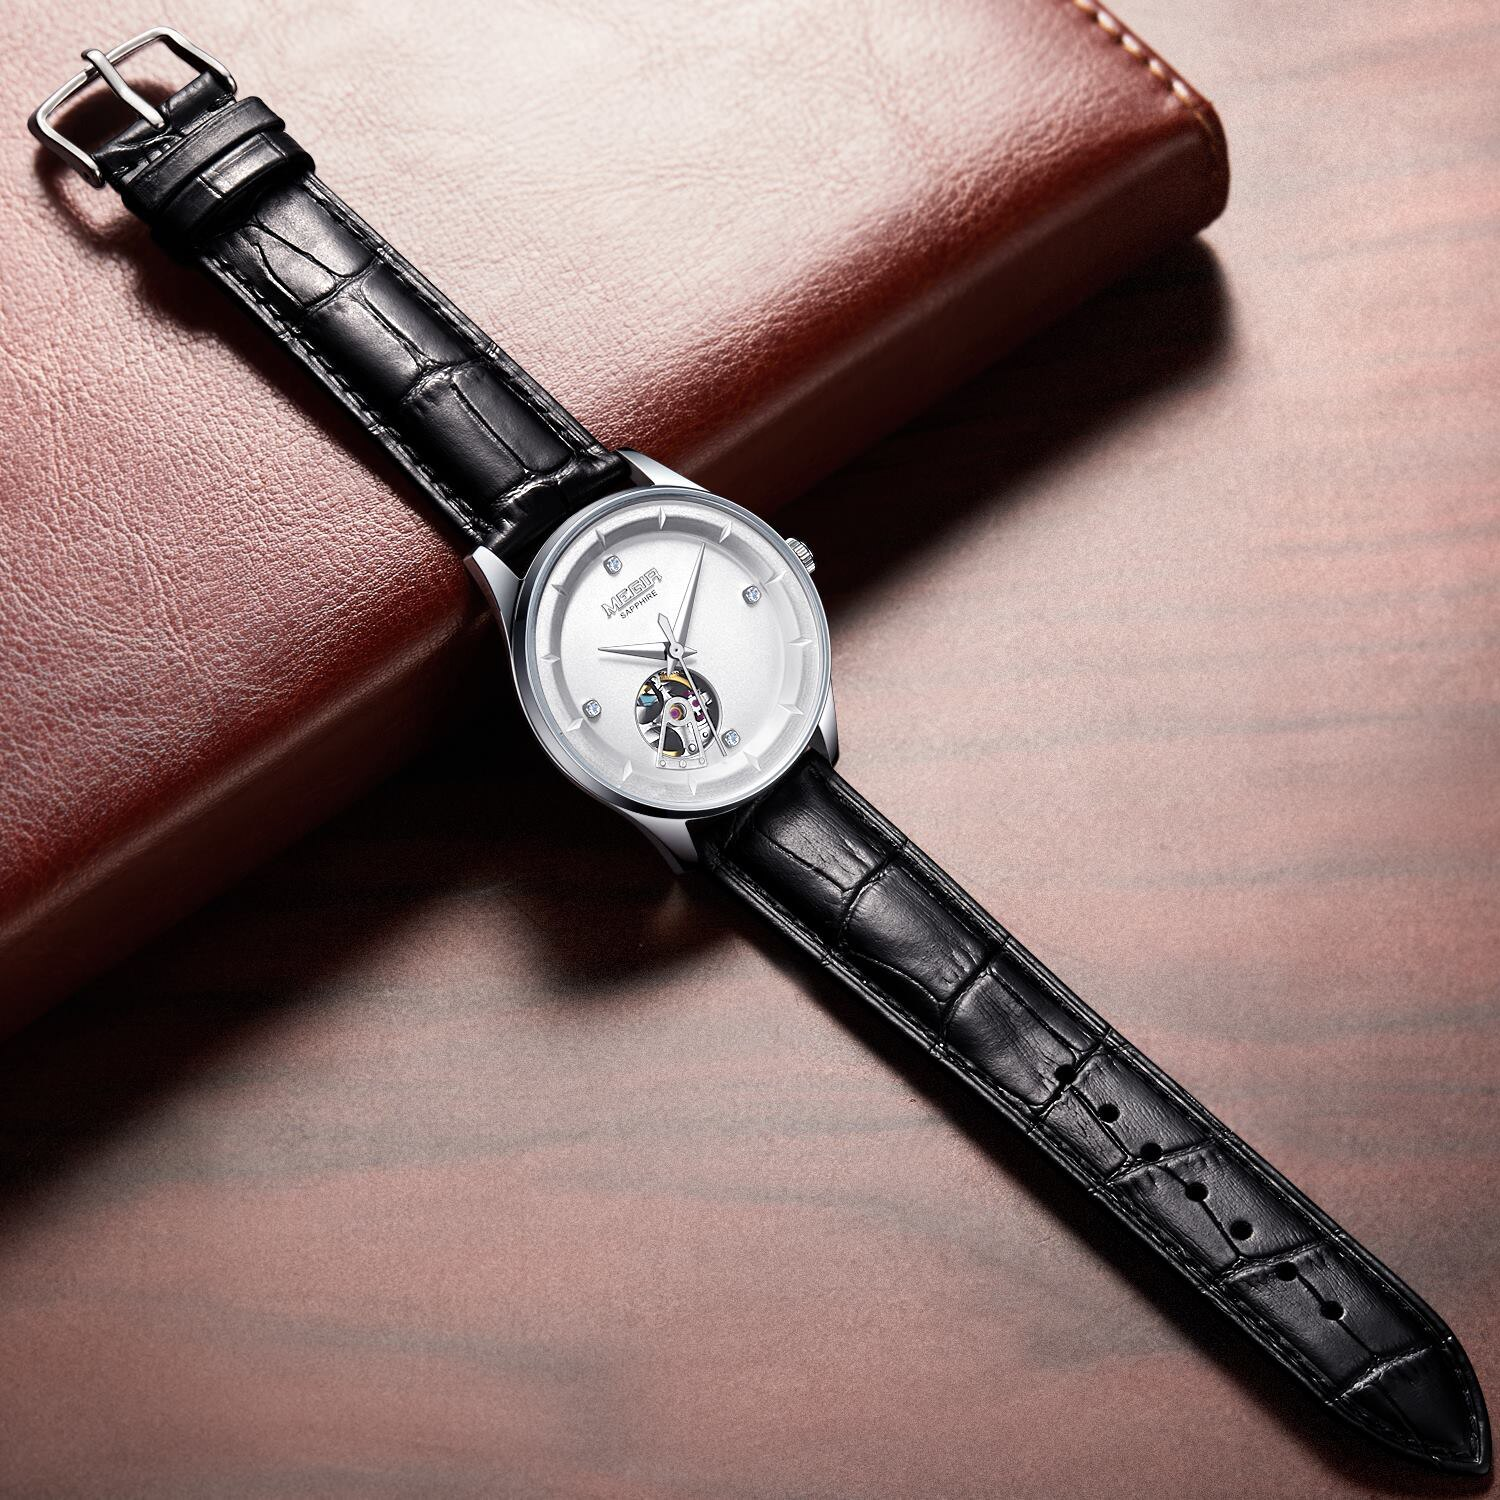 MEGIR Men's Mechanical Watches with Miyota Movement Genuine Leather Automatic Wrist Watch for Men Clock relogio masculino